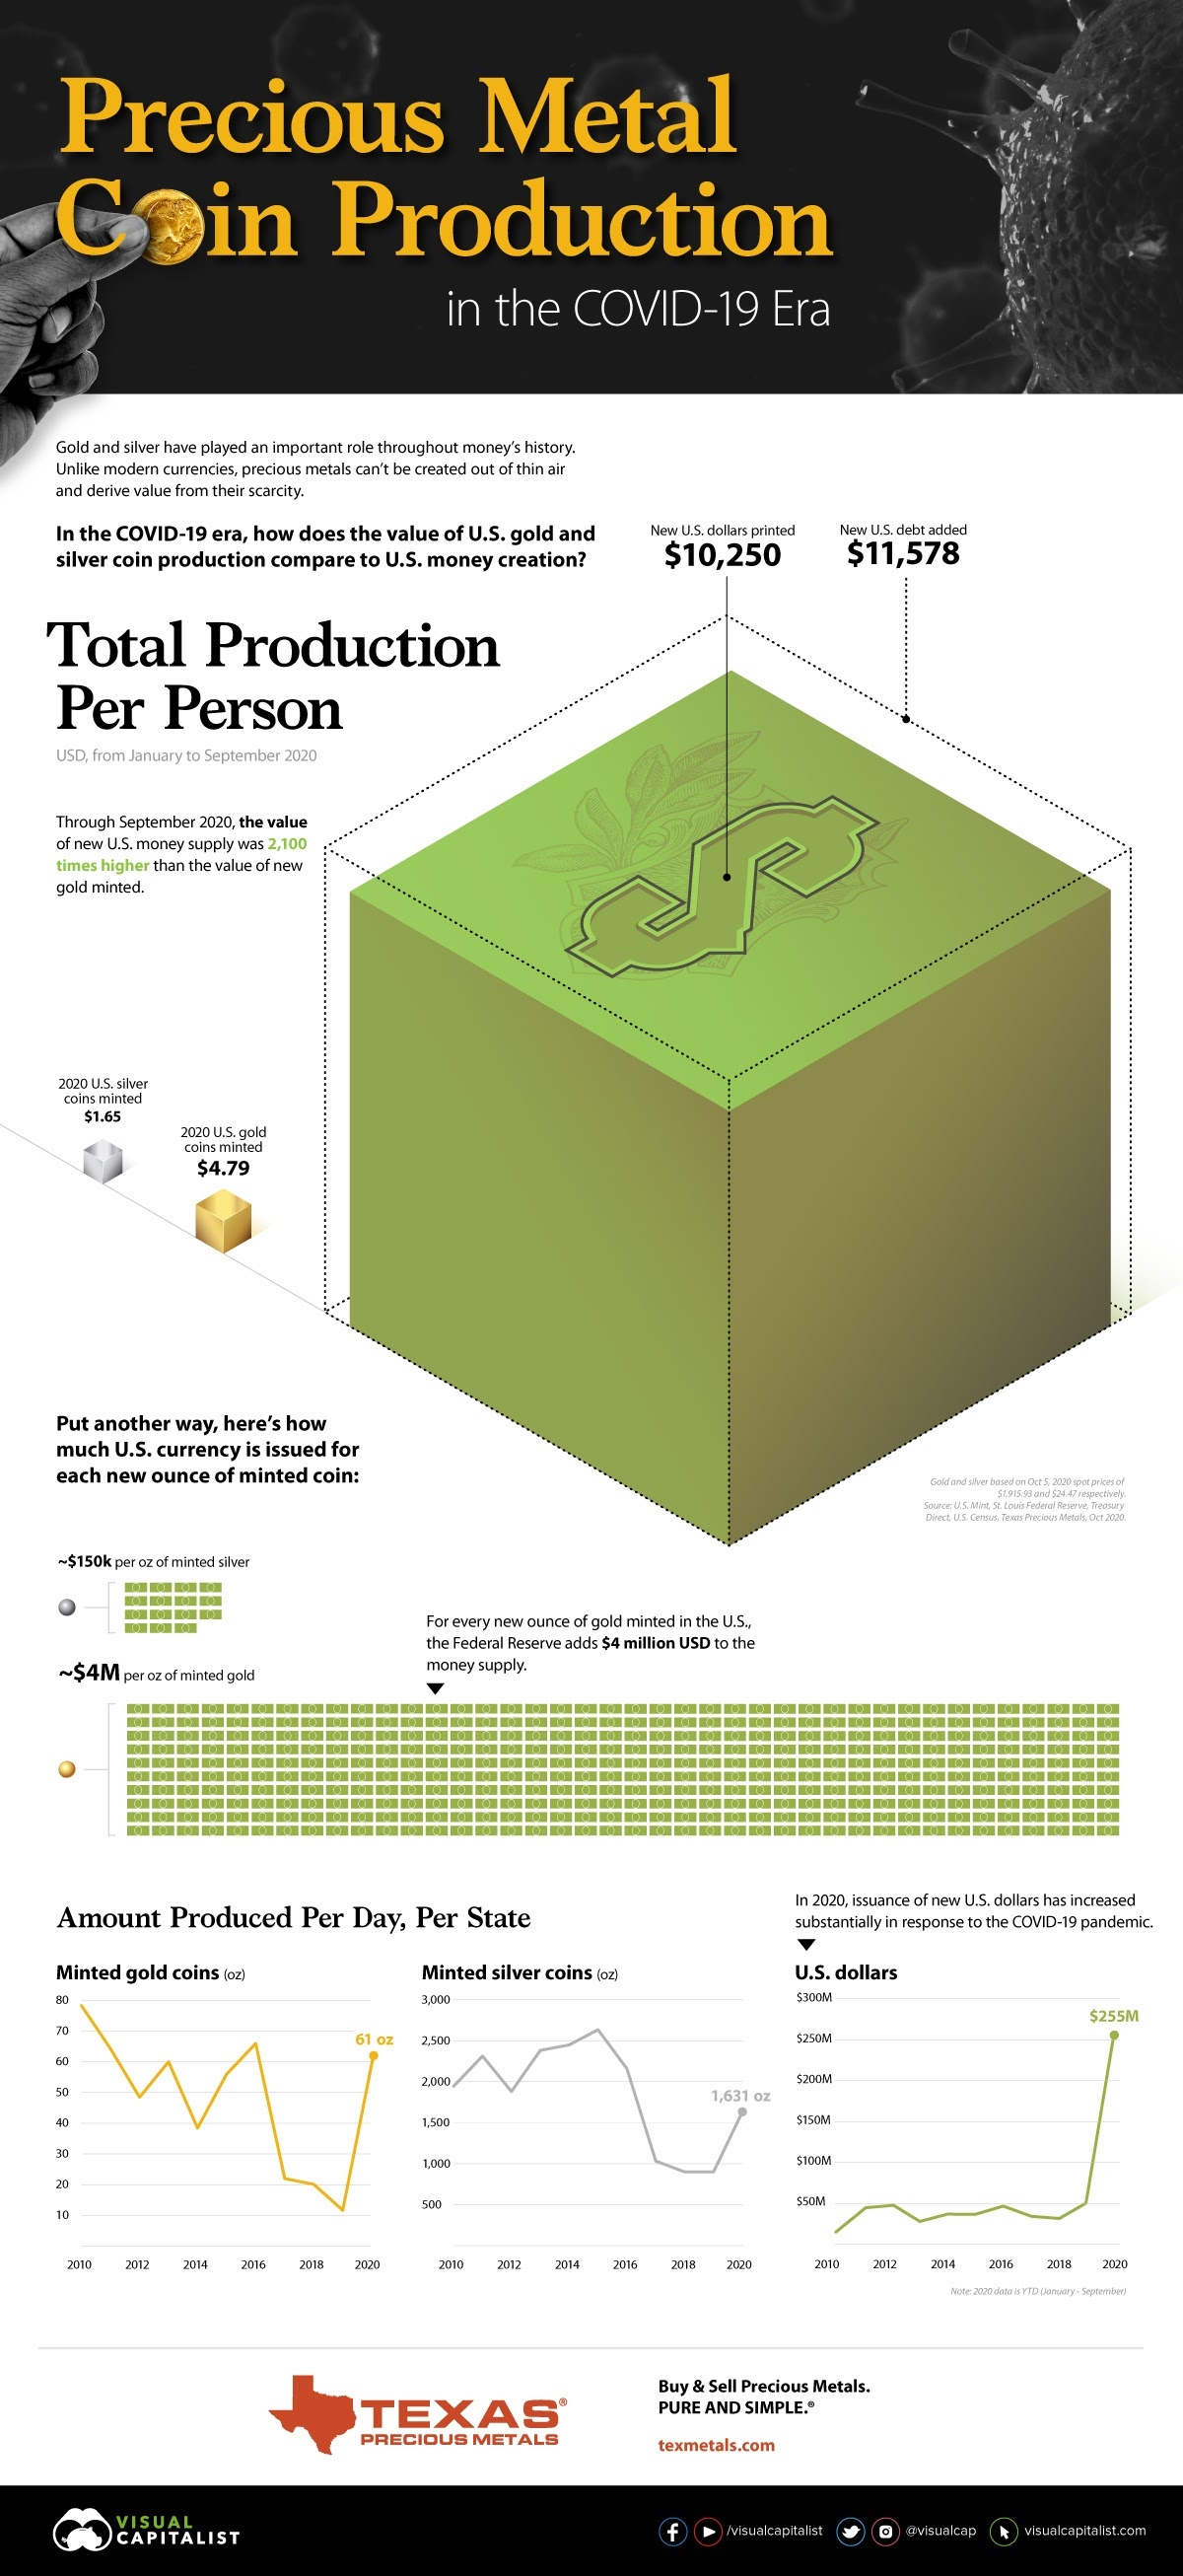 U.S. Money Supply vs. Precious Metal Production in the COVID-19 Era #infographic